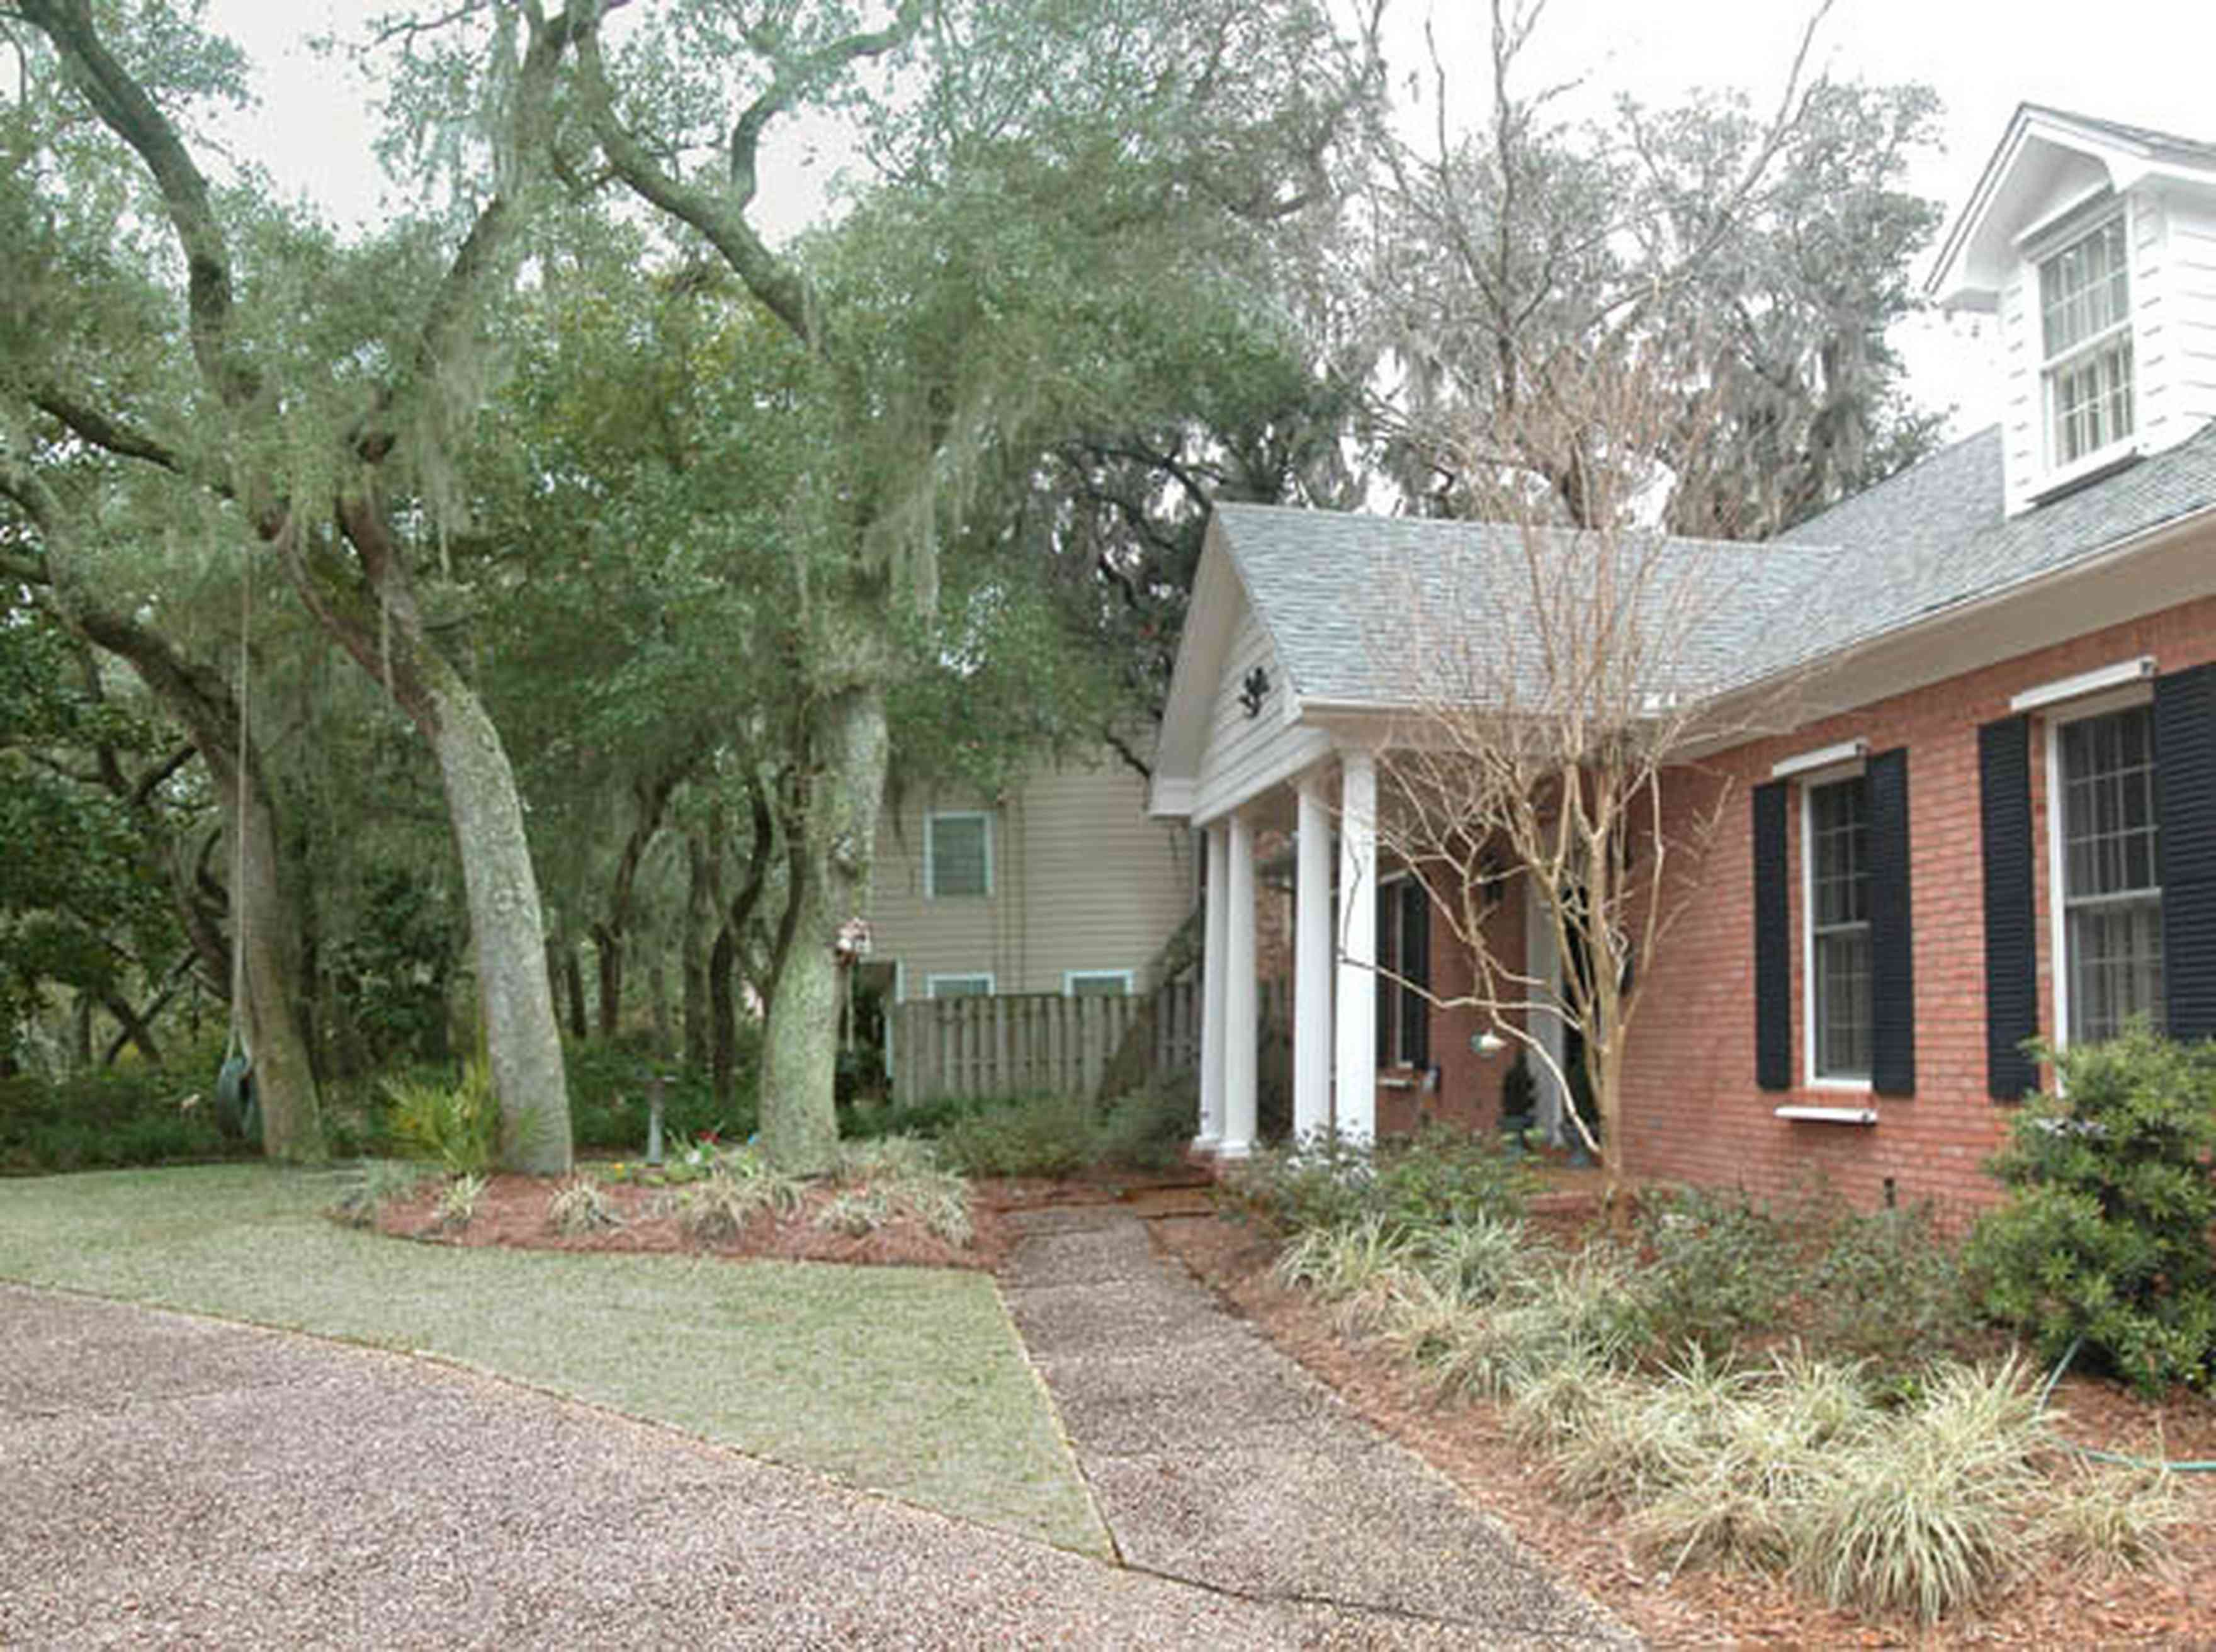 Gulf-Breeze:-228-North-Cliff-Dr_02.jpg:  colonial architectural style, columns, dormer window, shutters, oak trees, driveway, sidewalk, subdivision